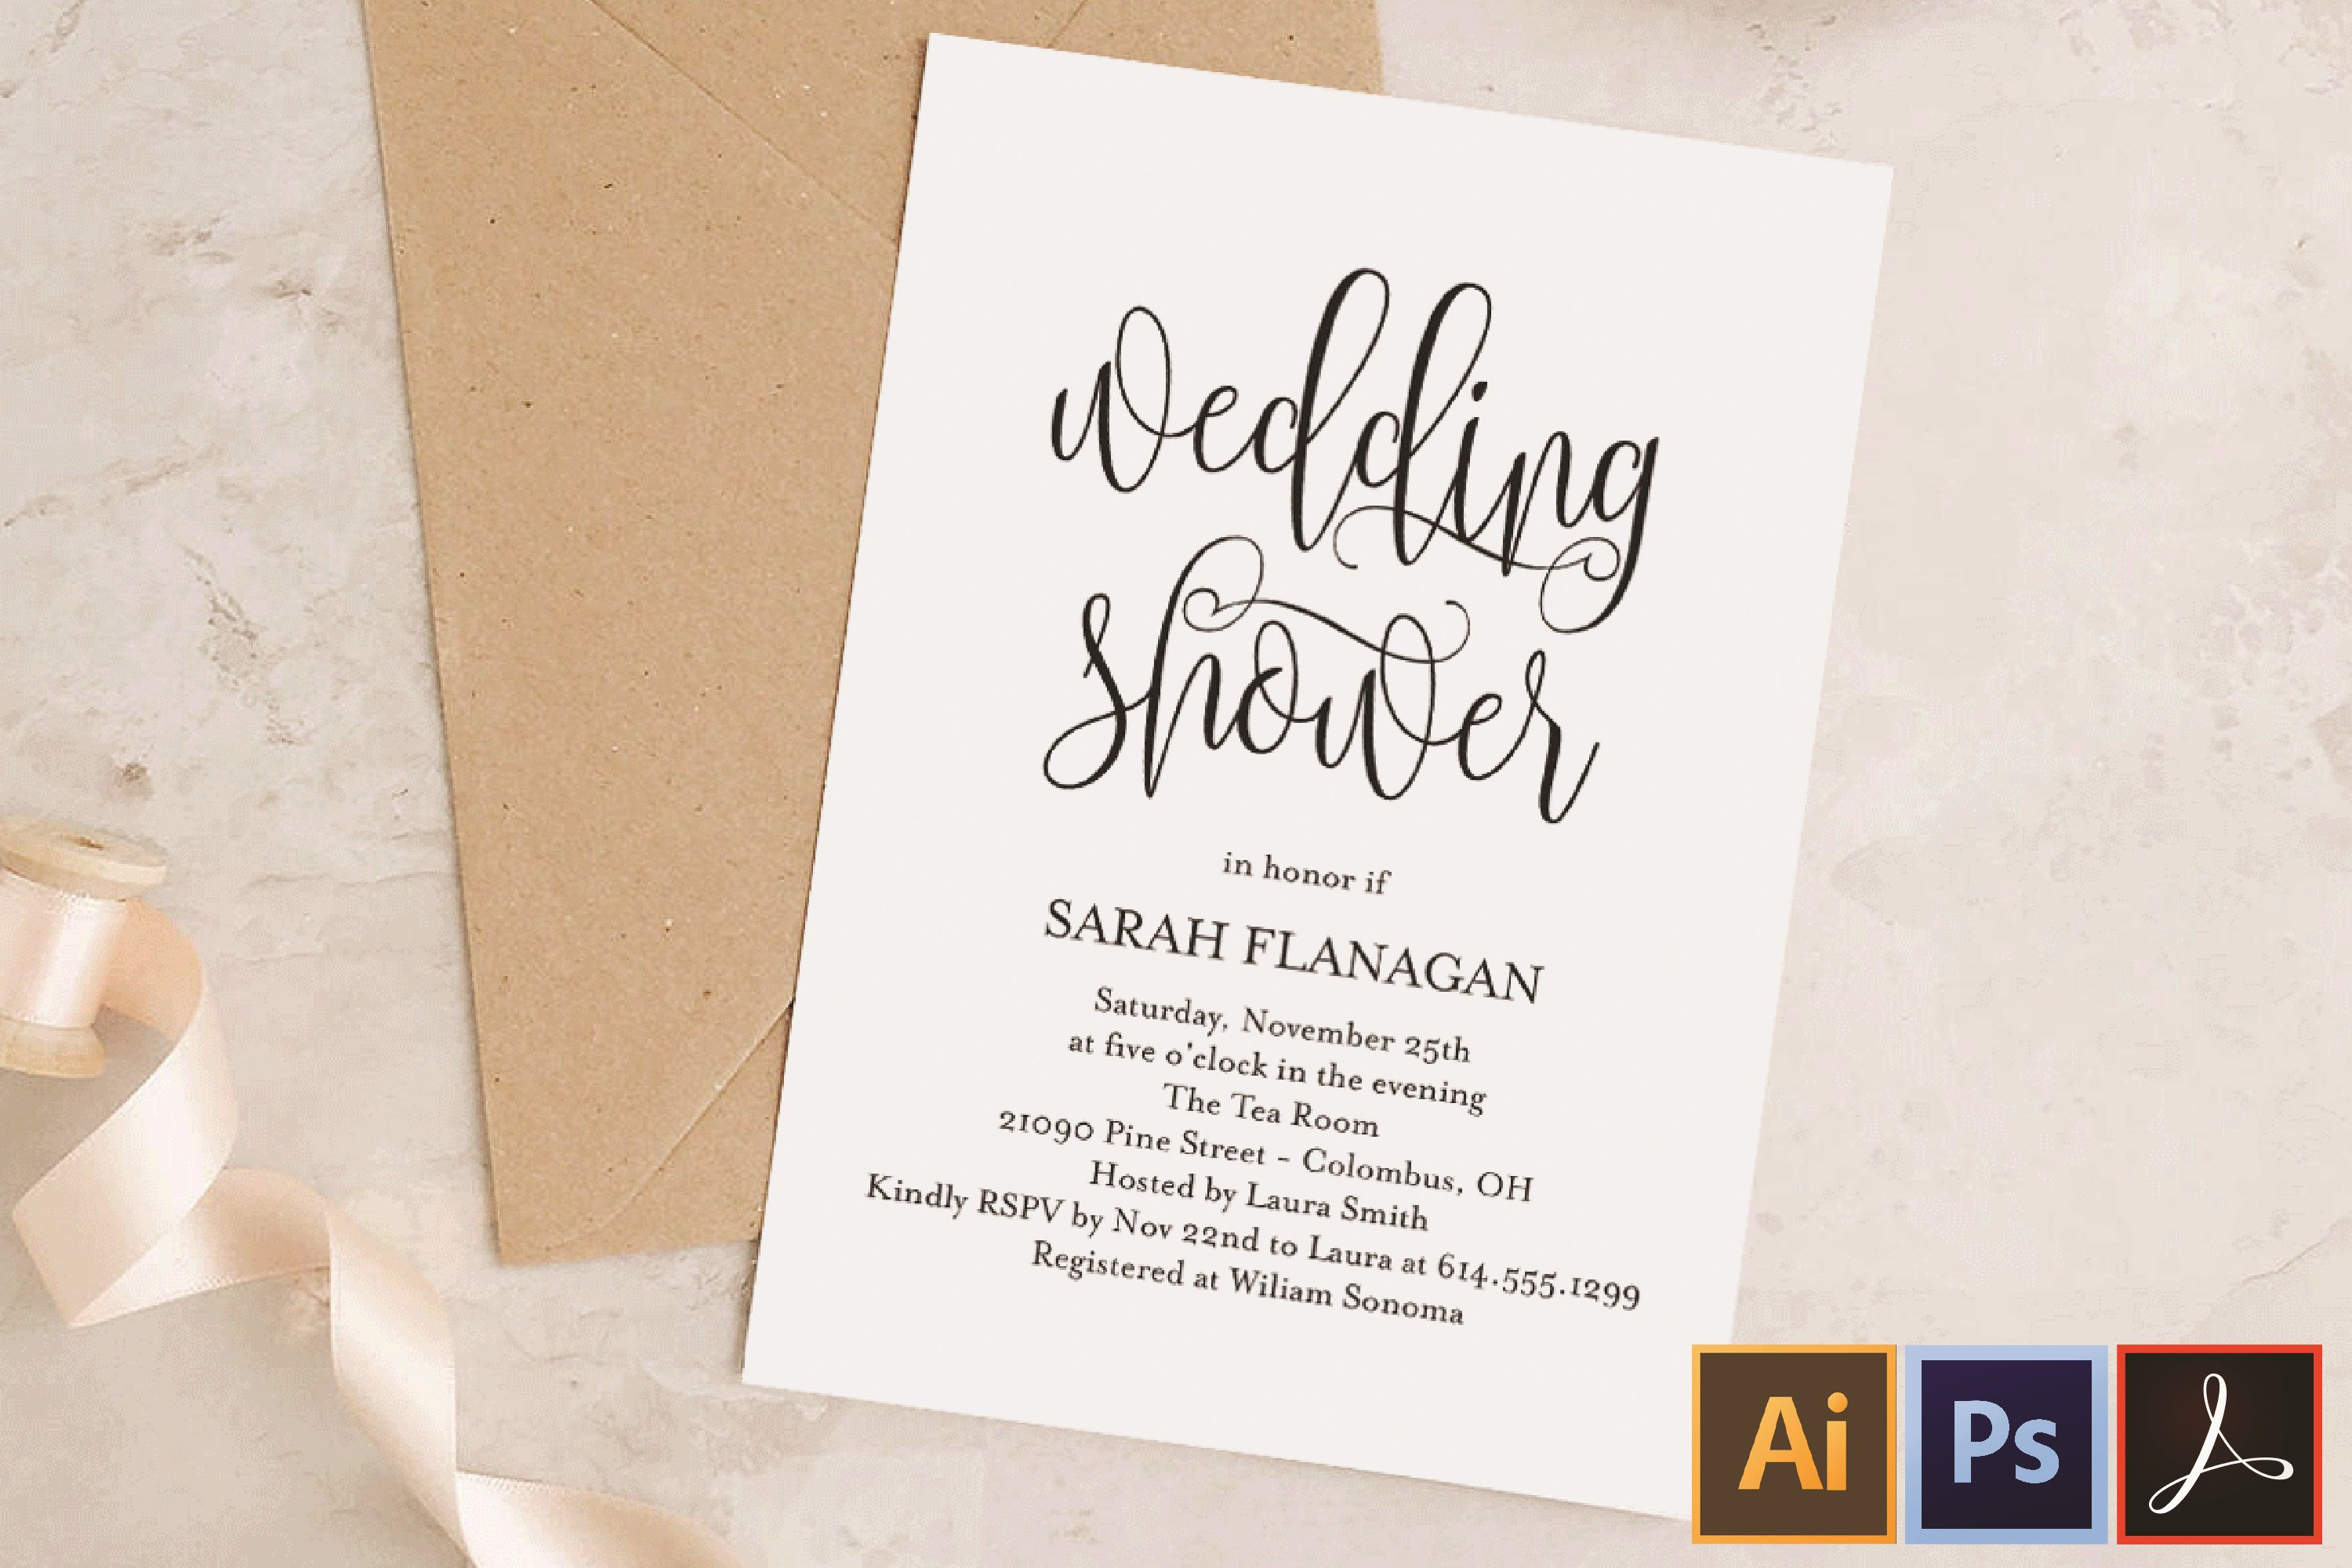 003 Fascinating Wedding Shower Invitation Template Highest Clarity  Templates Bridal Pinterest Microsoft Word Free ForFull